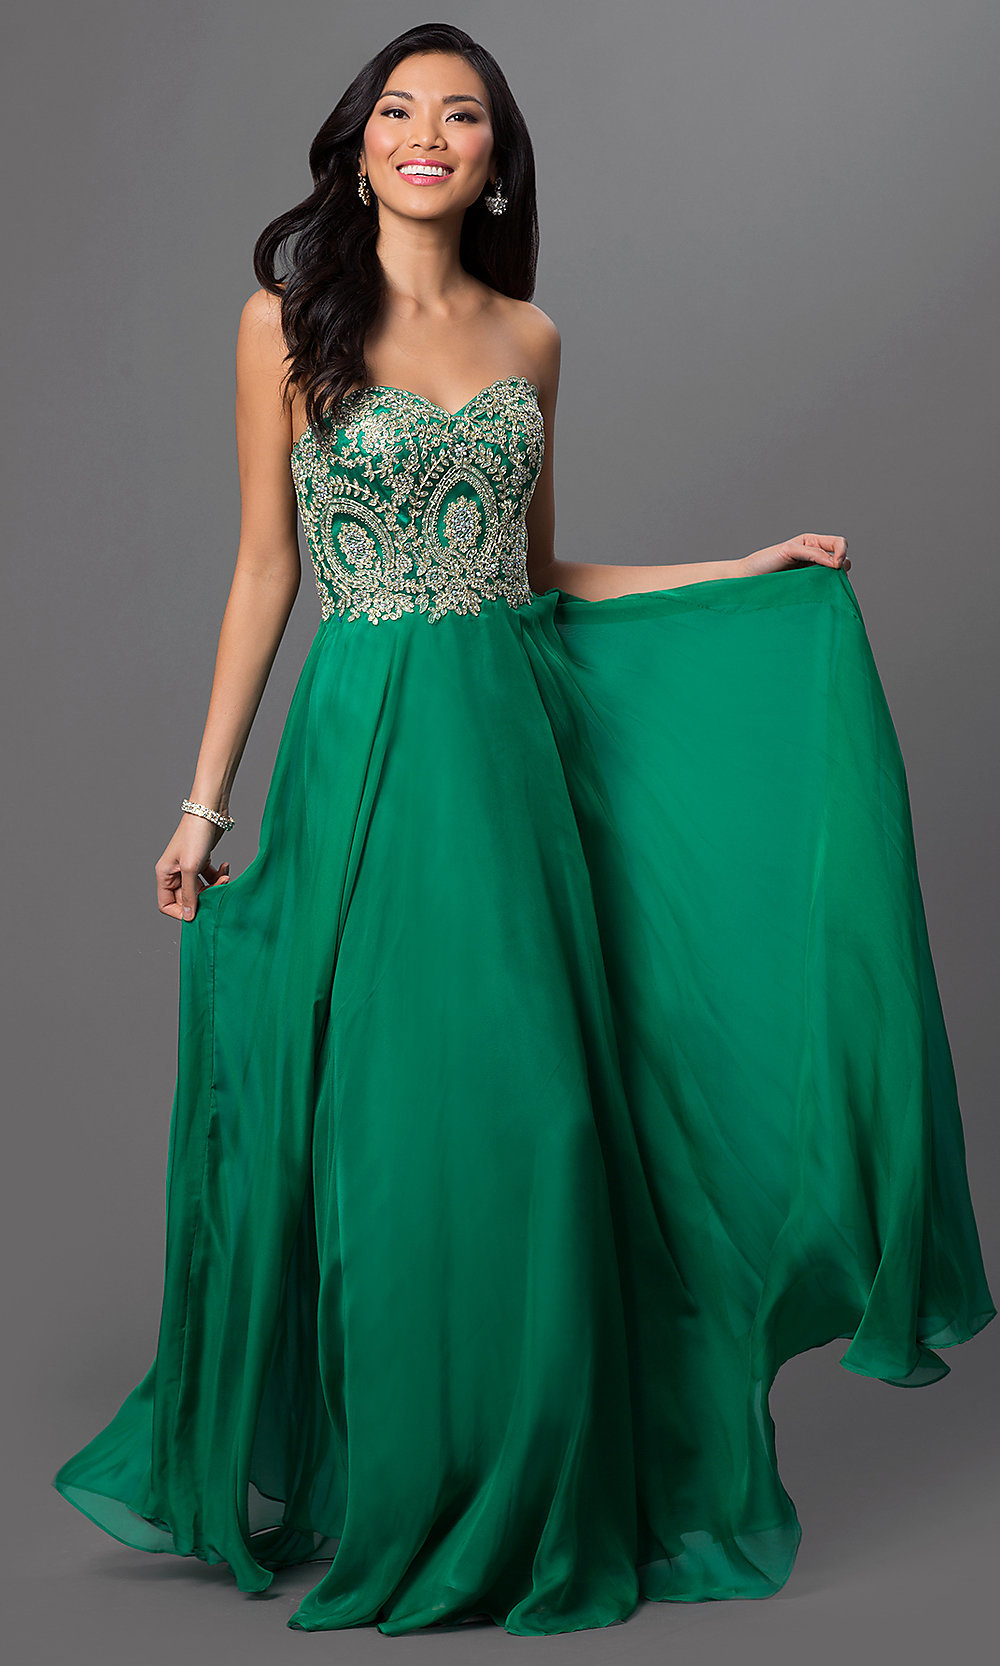 And Green Prom Dresses - Prom Dresses 2018